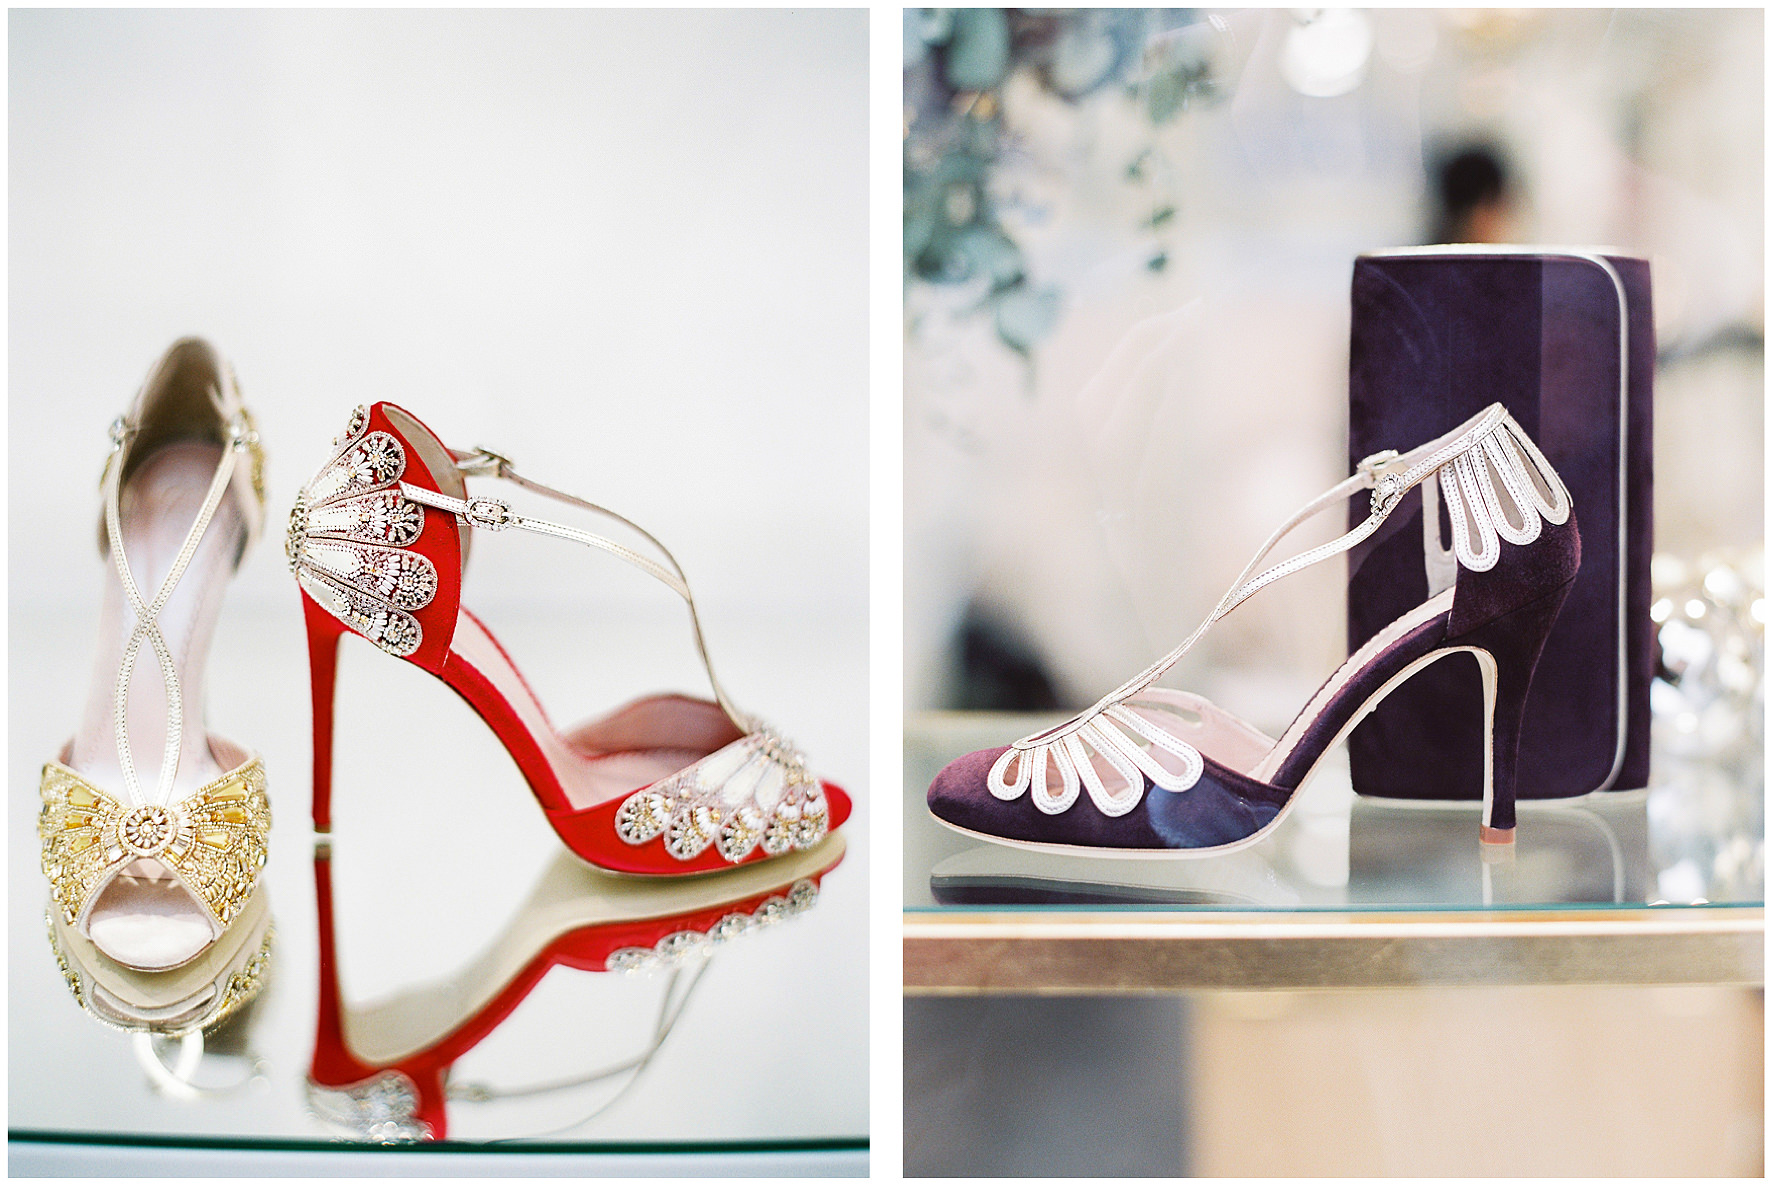 Emmy London, Emmy, Bridal shoes, boutique, wedding shoes, flagship store, Fulham Road, Chelsea Collection, evening collection. Lucy Davenport Photography